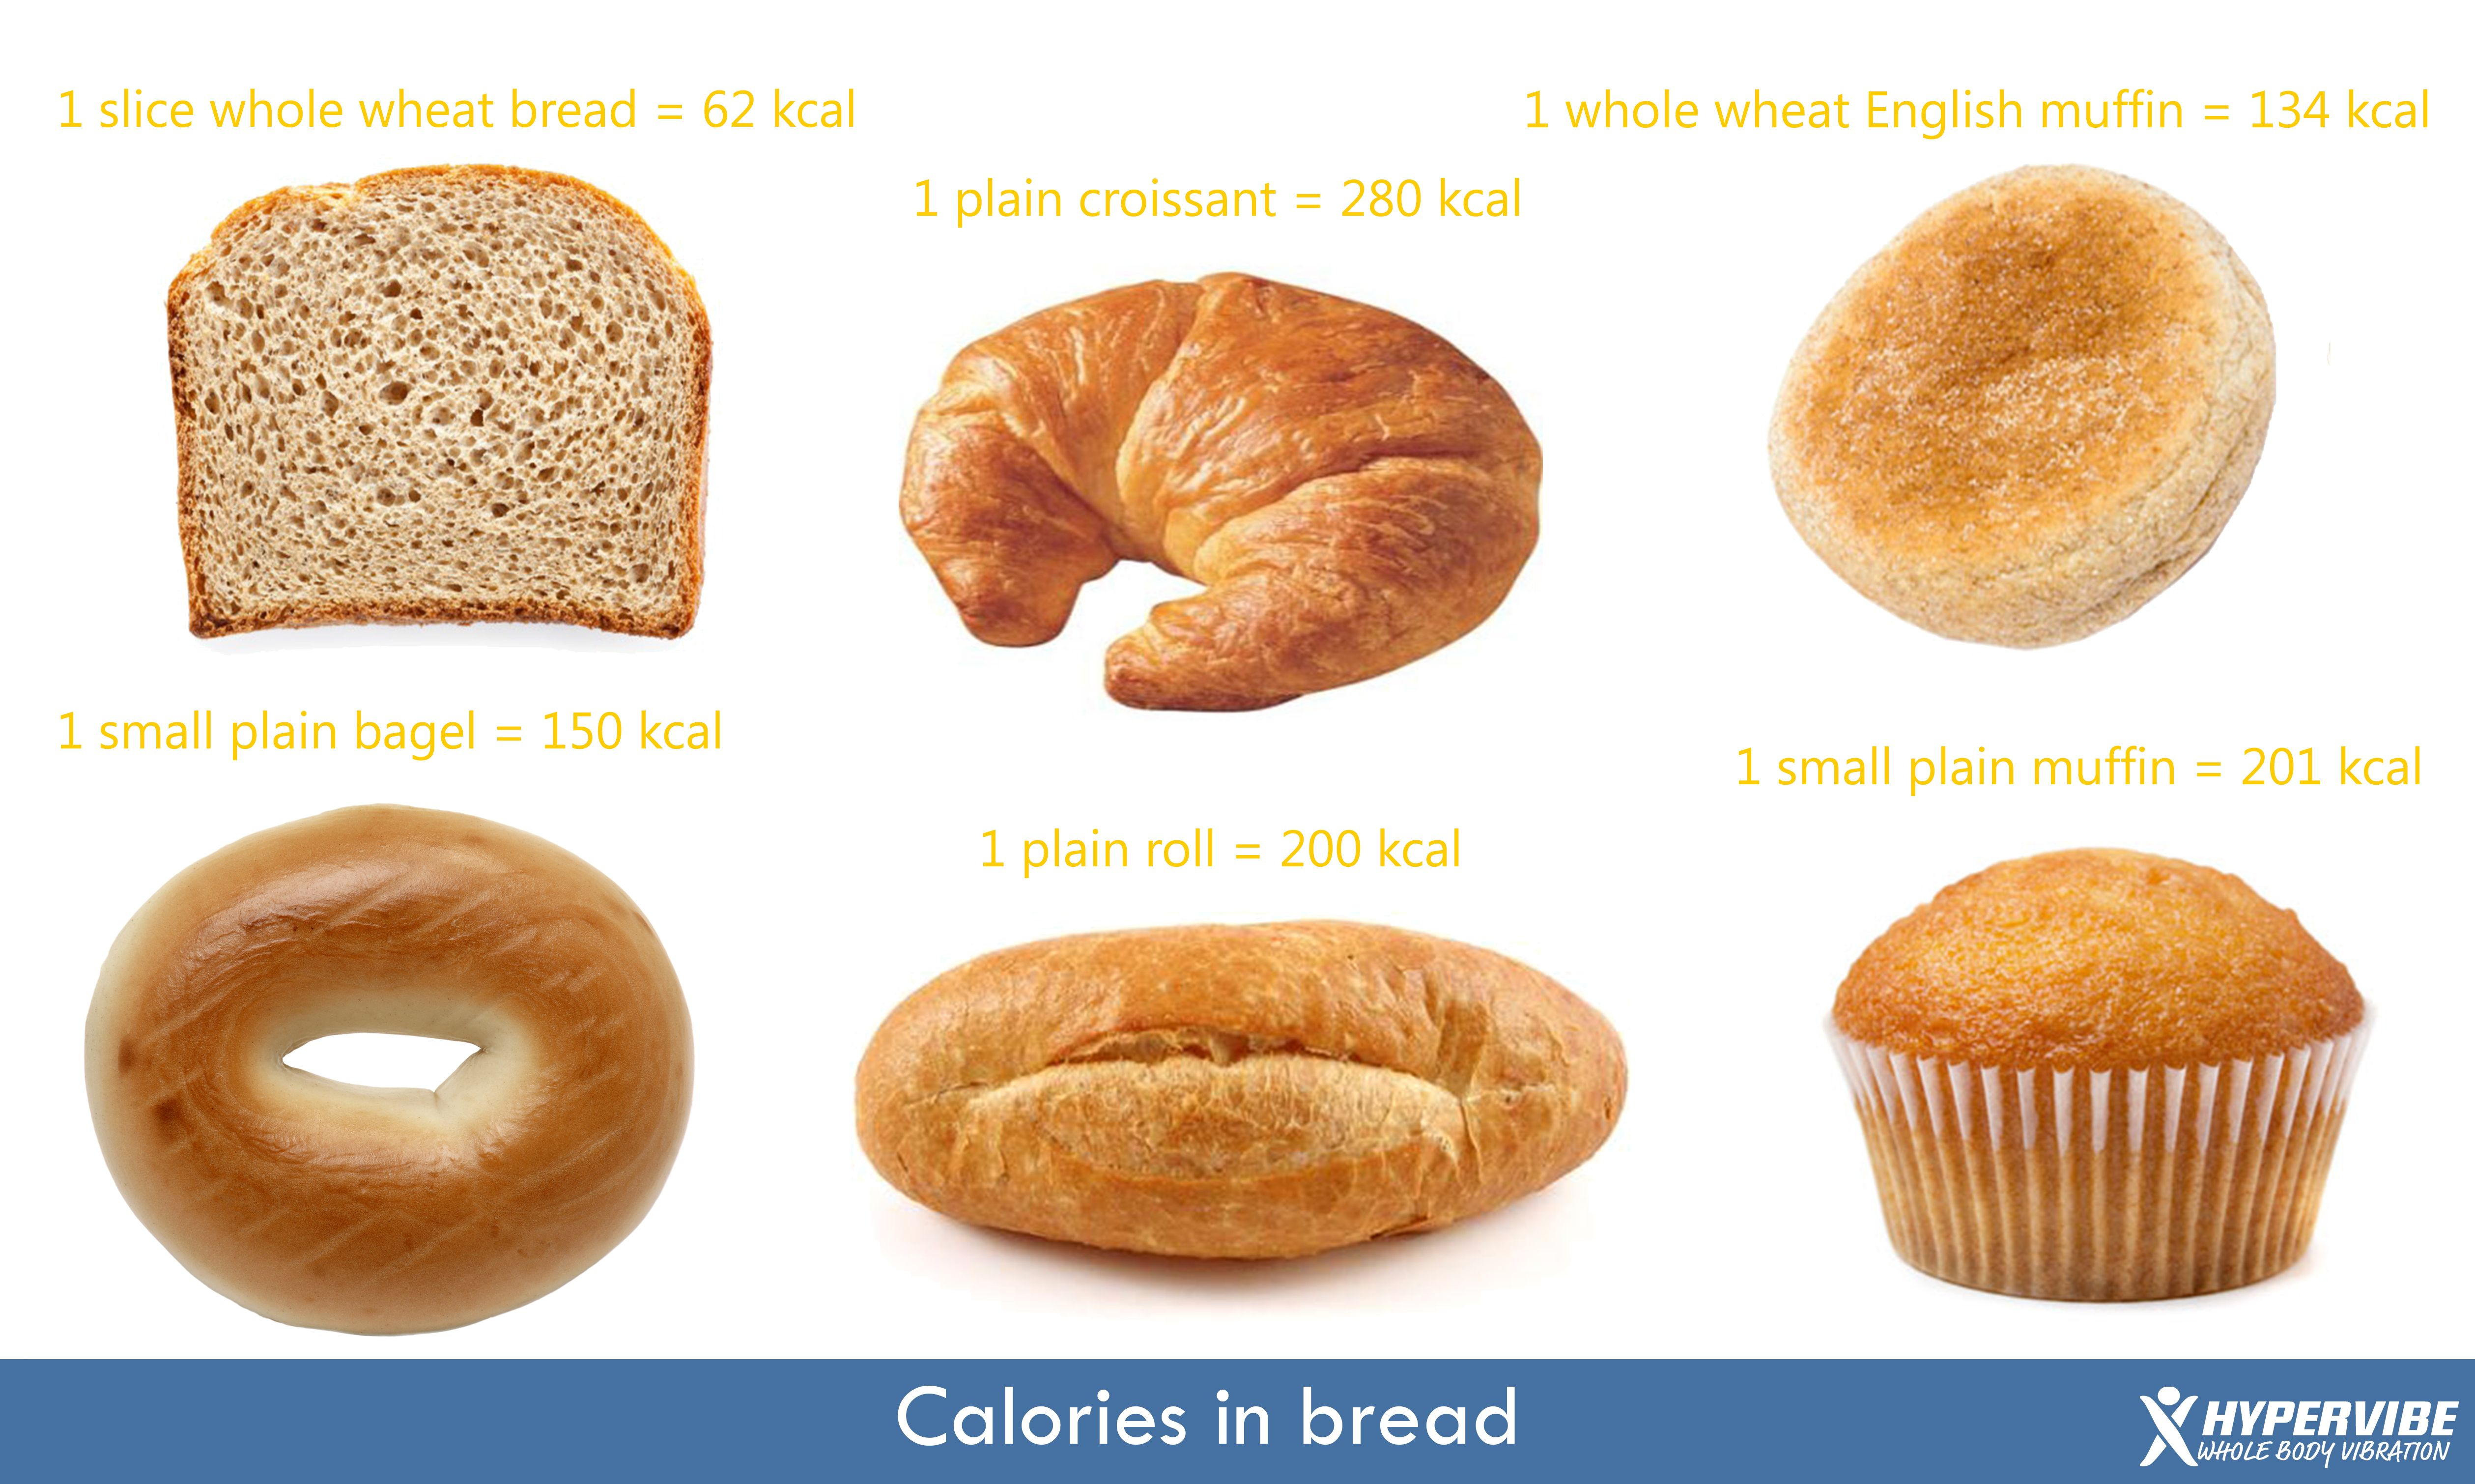 How many calories are in a piece of bread